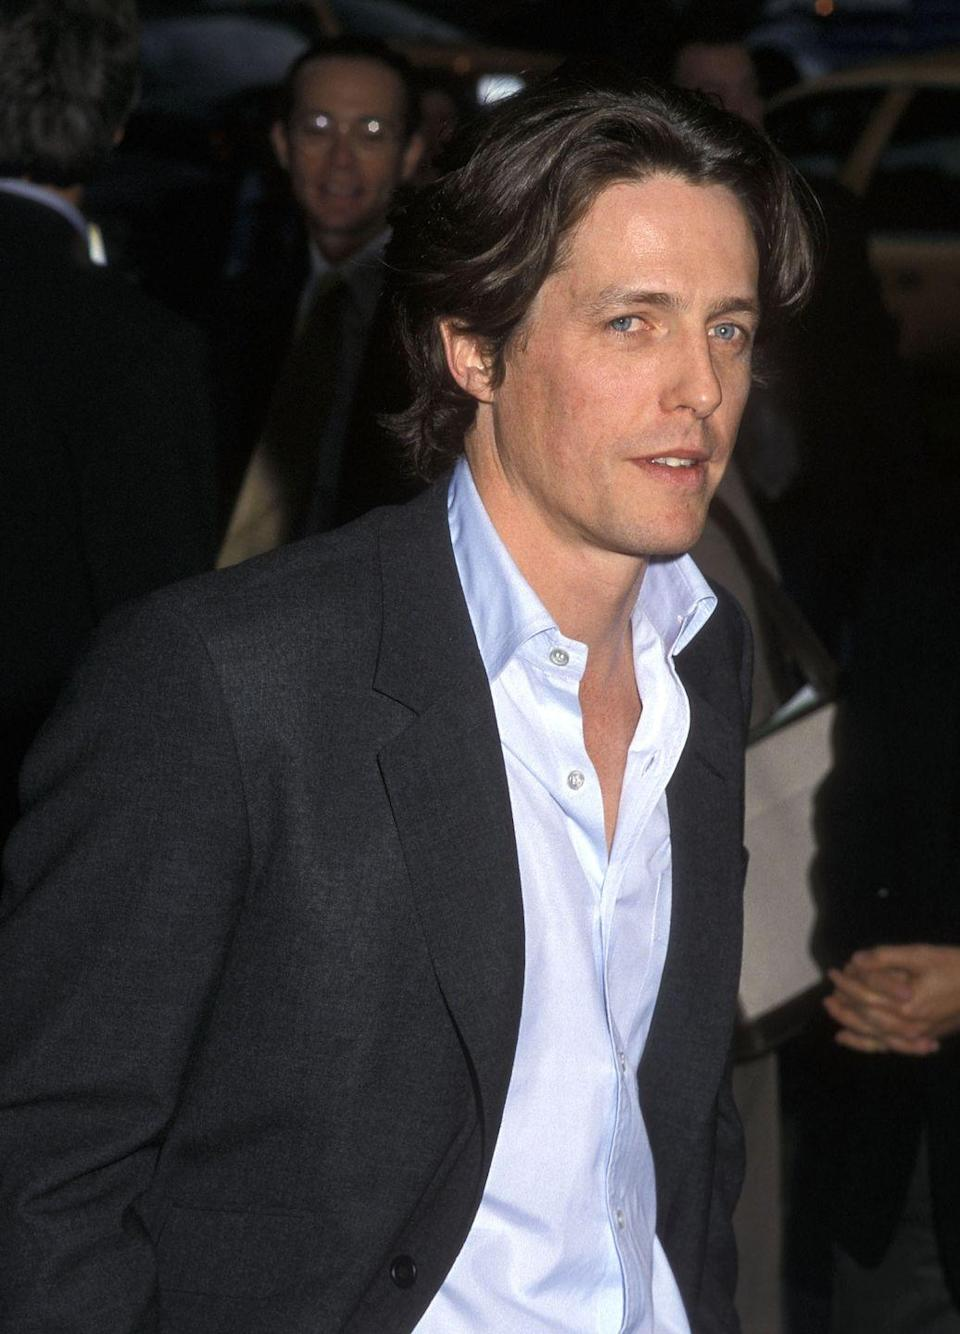 <p>The London native made hearts everywhere swoon with his leading roles in <em>Bridget Jones's Diary</em> (2001), <em>About a Boy</em> (2002), and <em>Love Actually</em> (2003).</p>